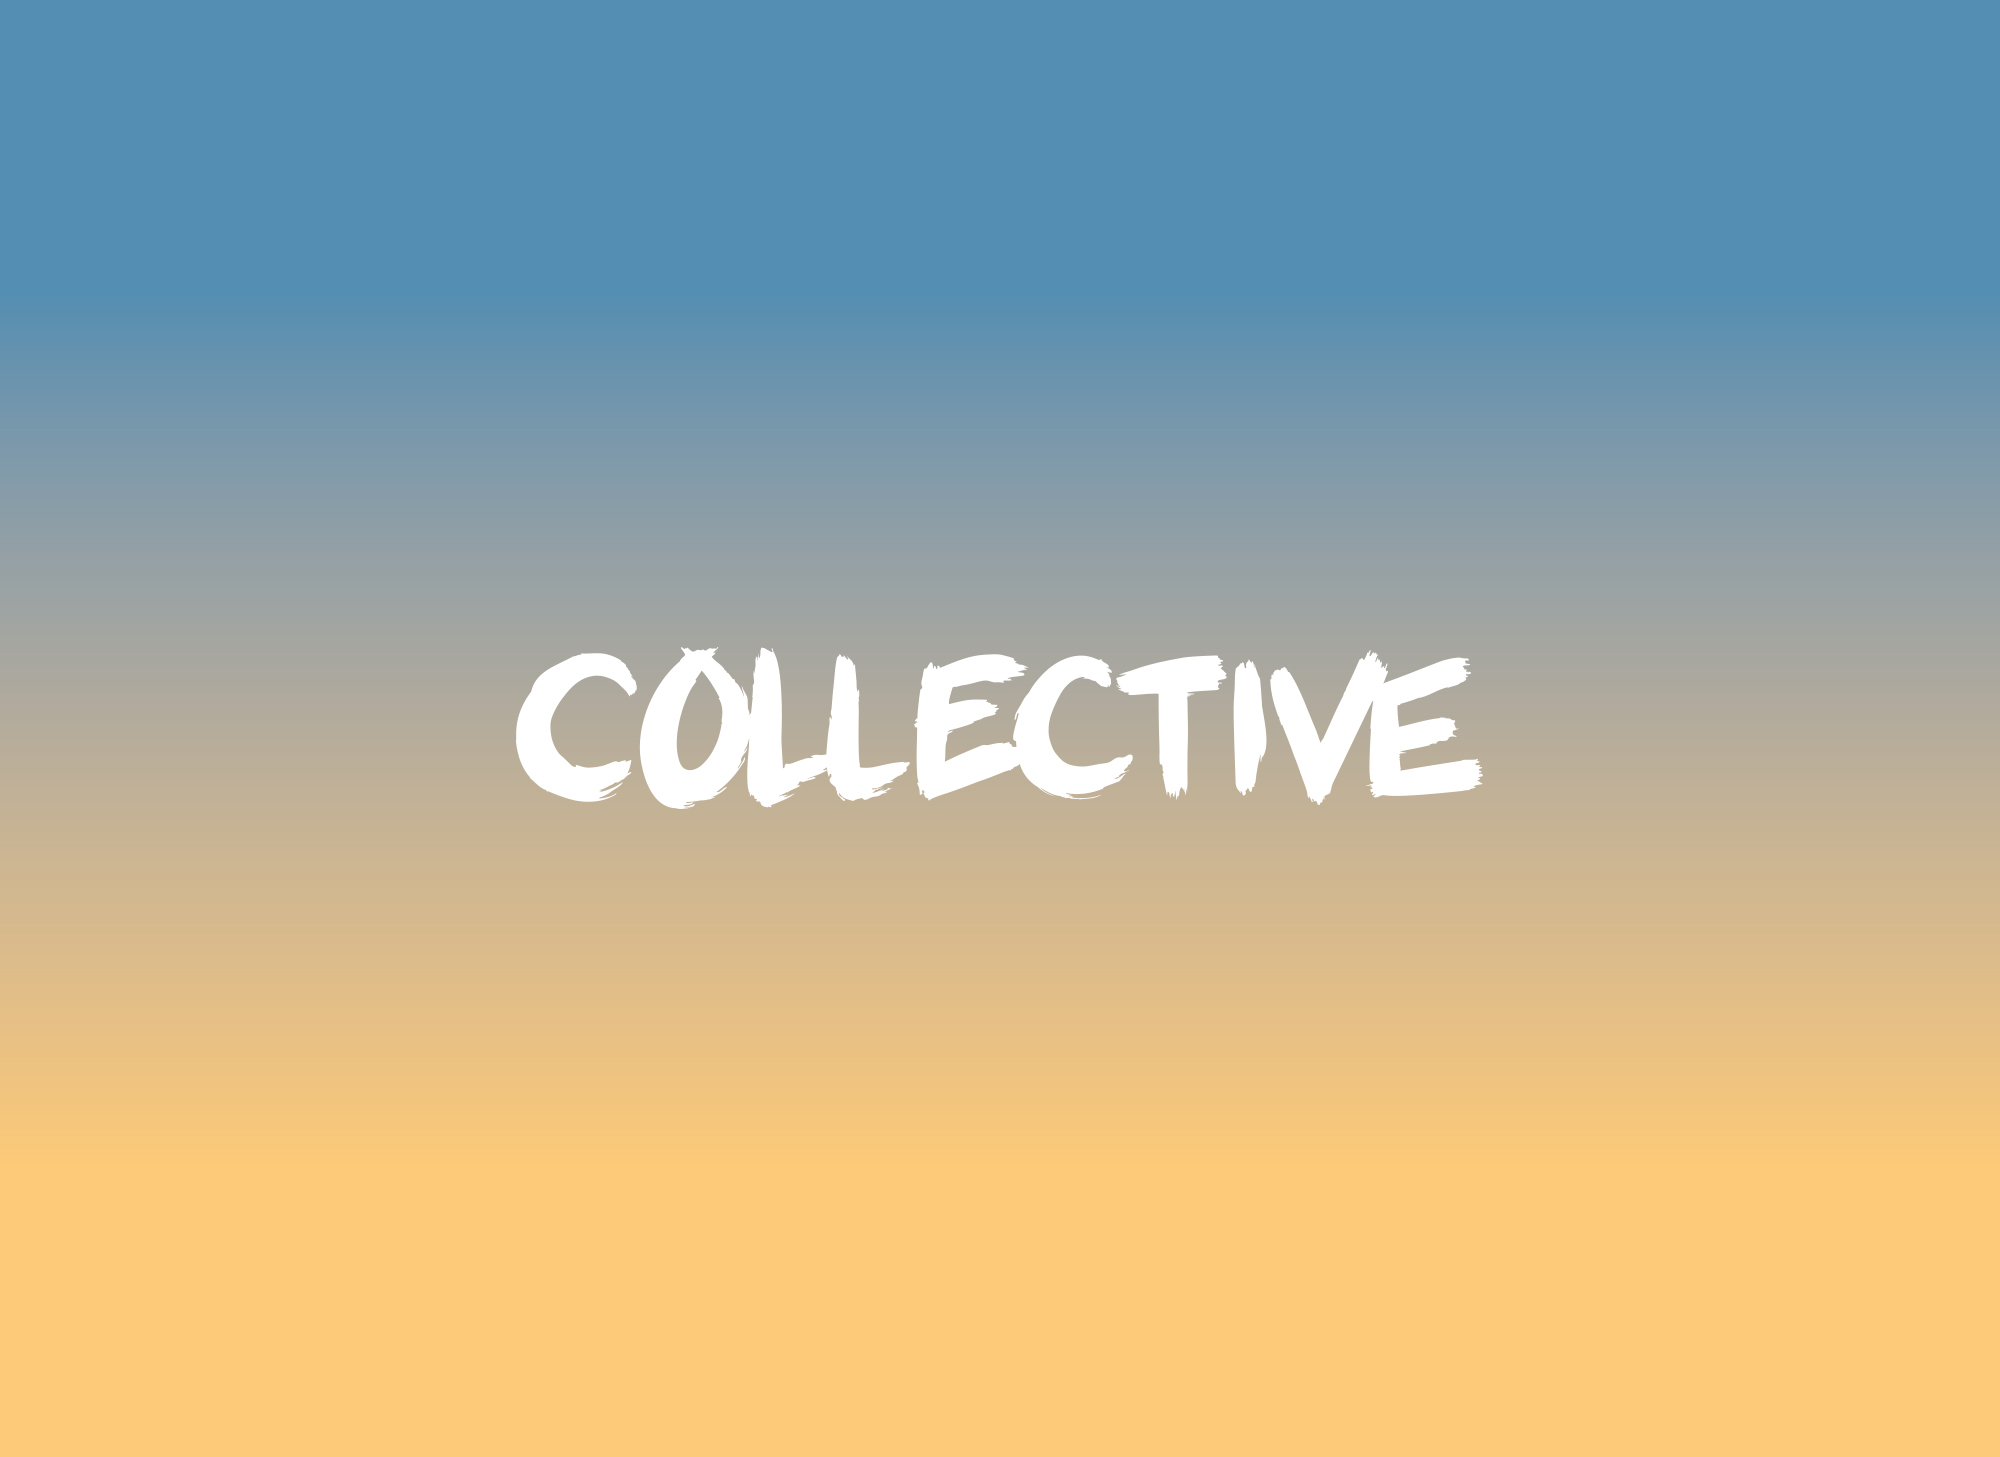 Collective Gallery logo on a blue to orange gradient